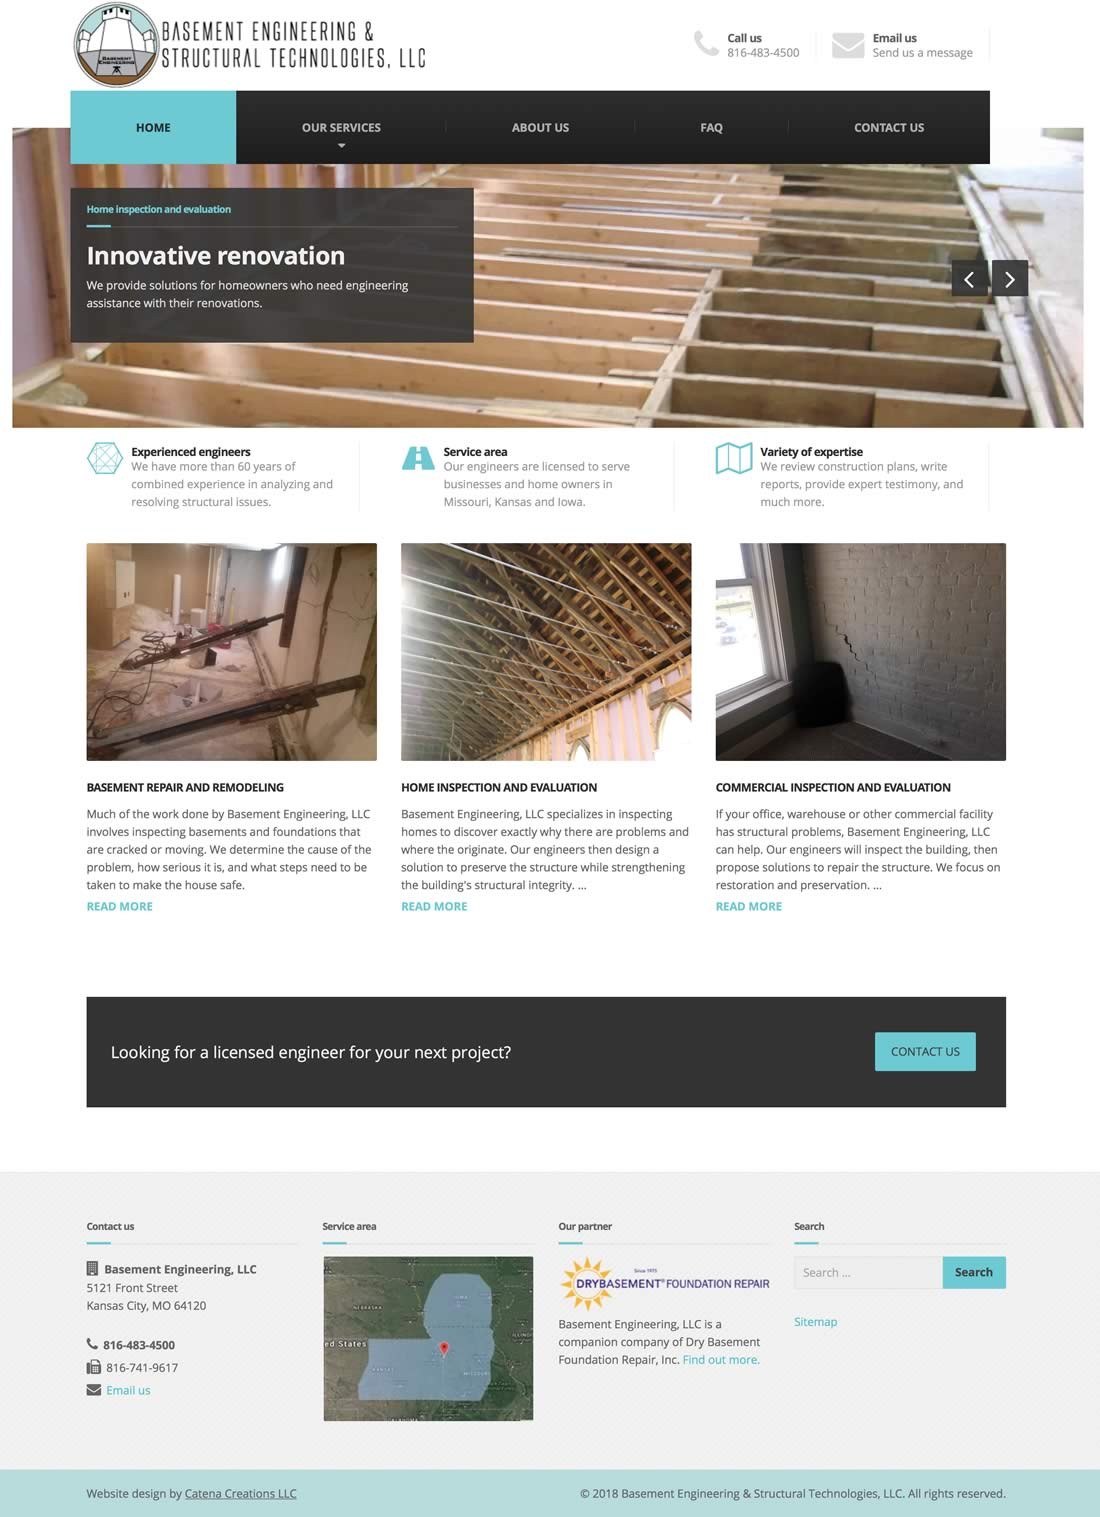 Basement Engineering website design